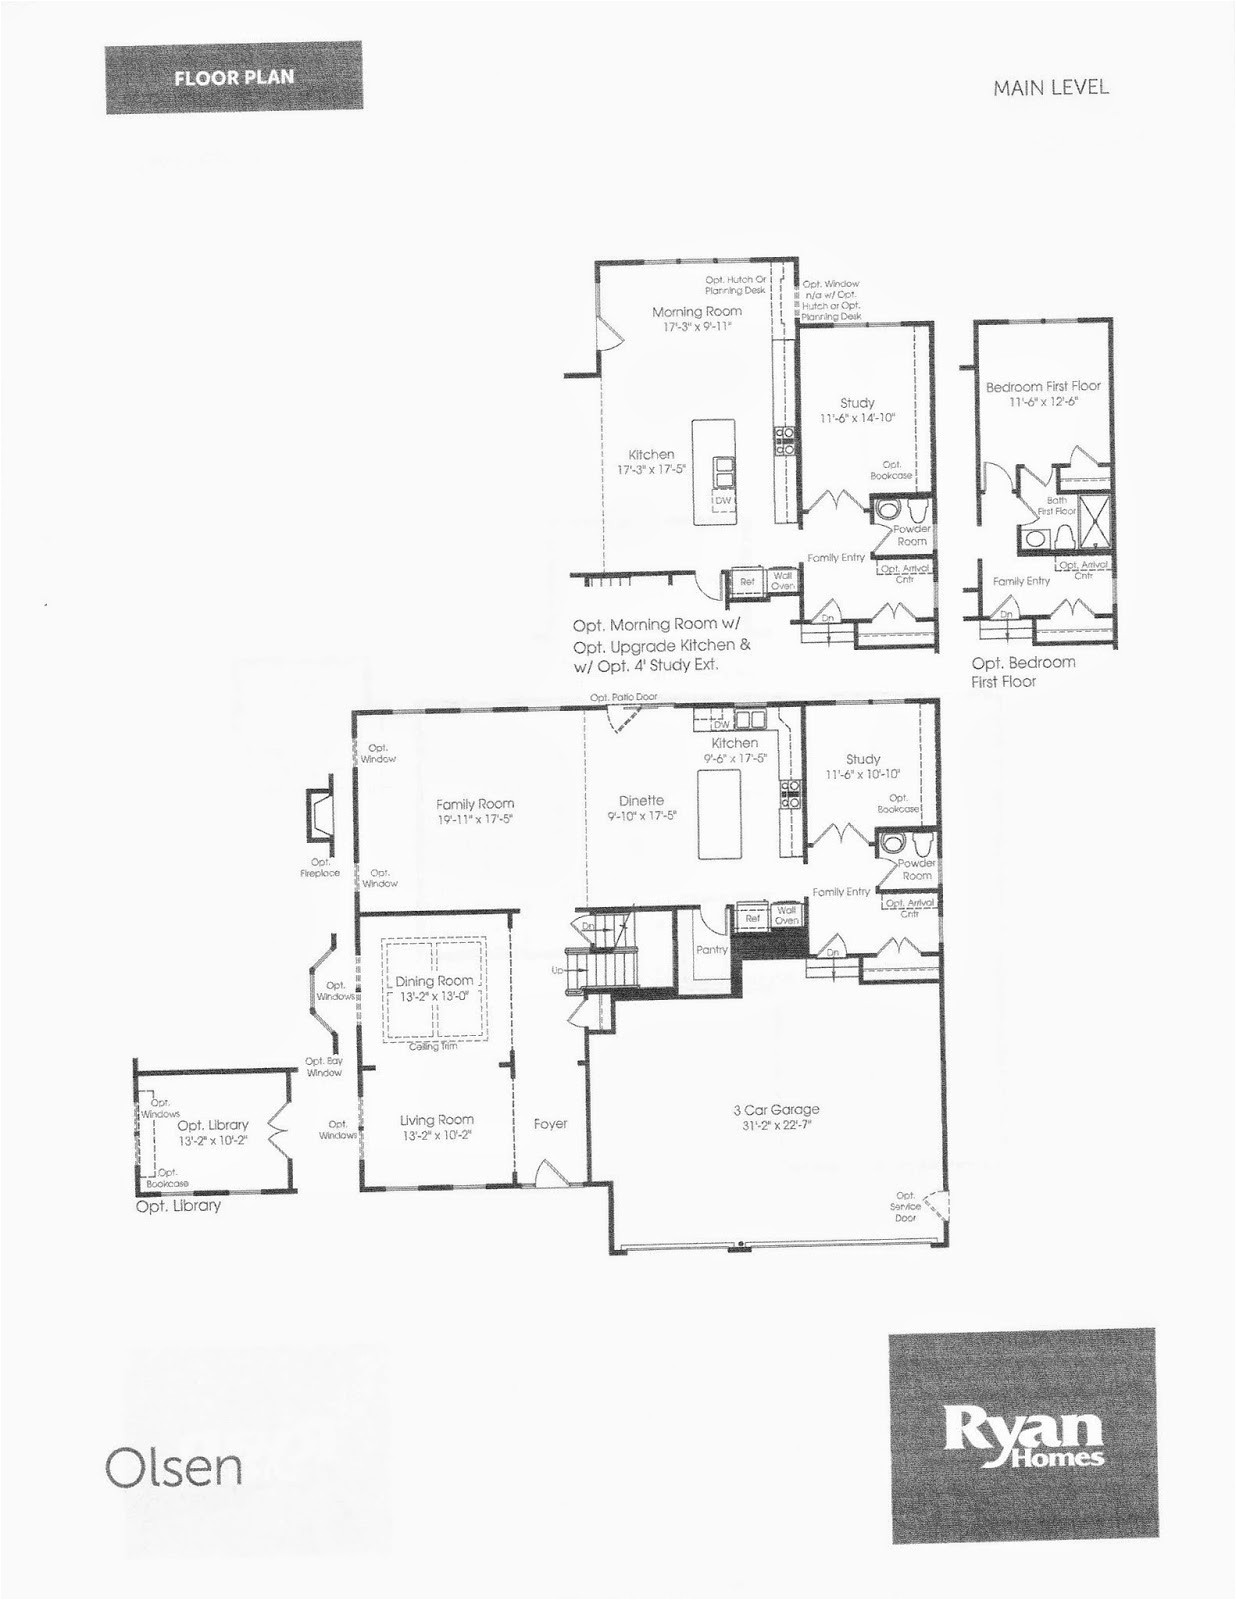 ryan homes savoy model floor plan beautiful ryan homes floor plans beautiful ryan homes venice floor plan